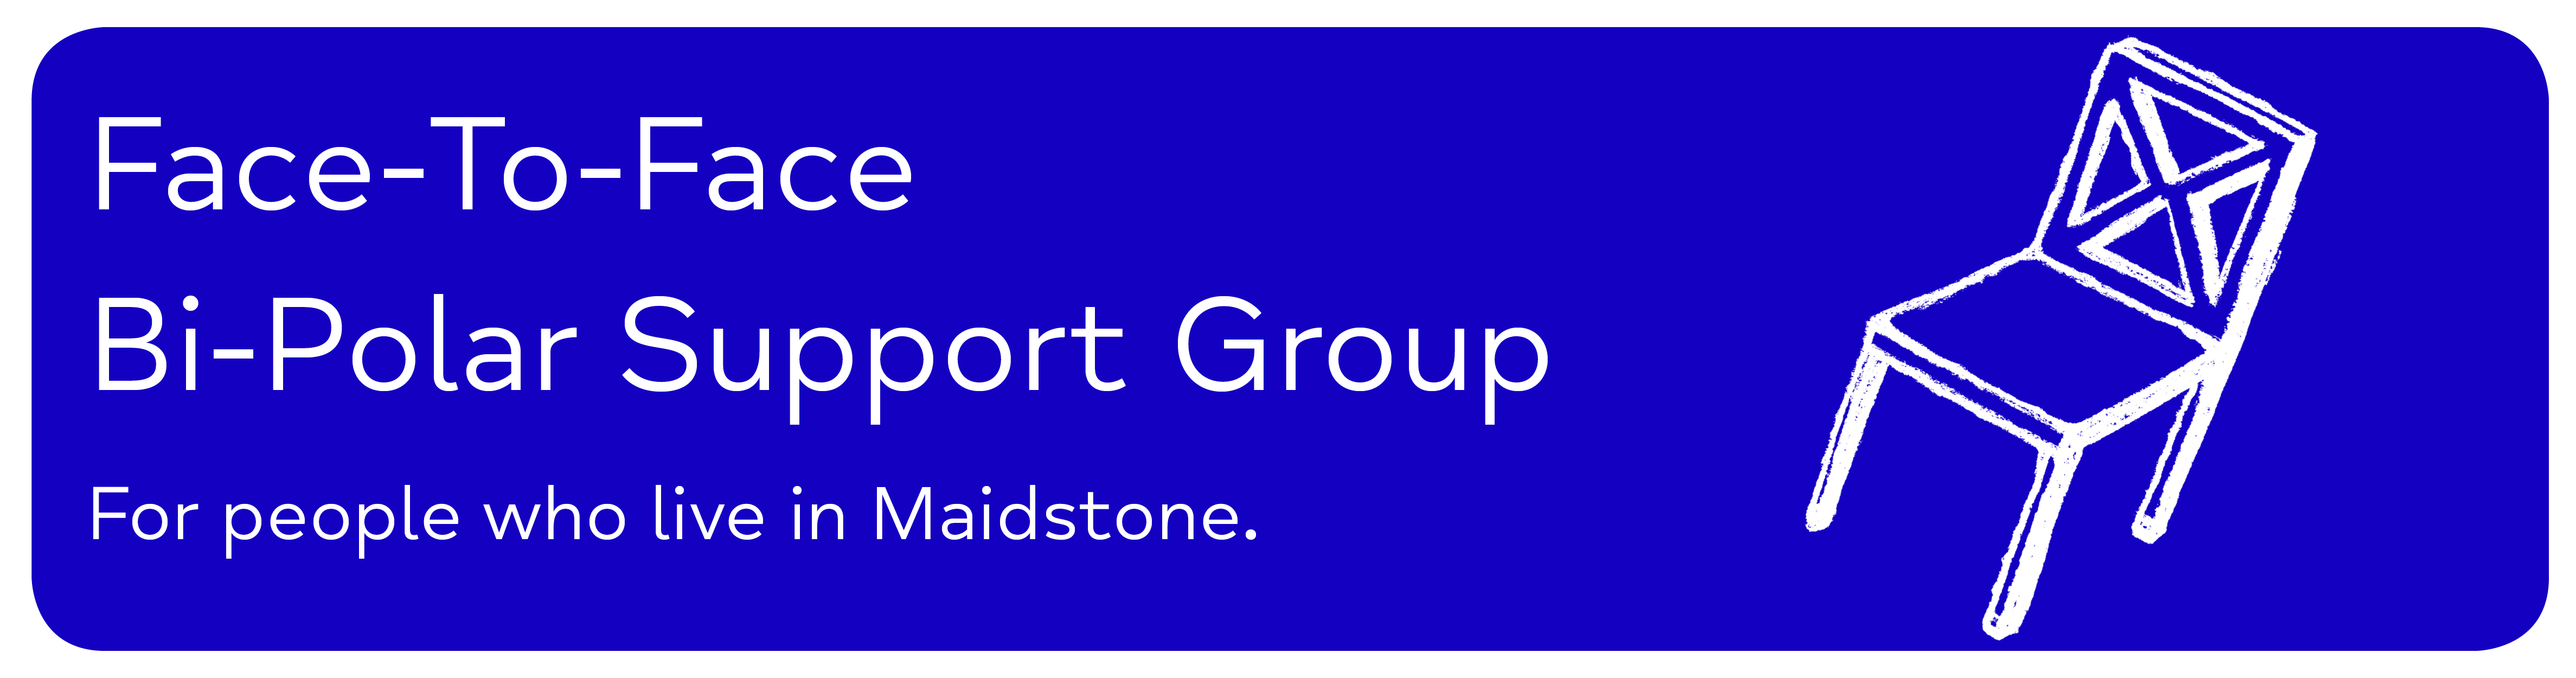 Face-To-Face Bi-Polar Support Group For people who live in Maidstone.